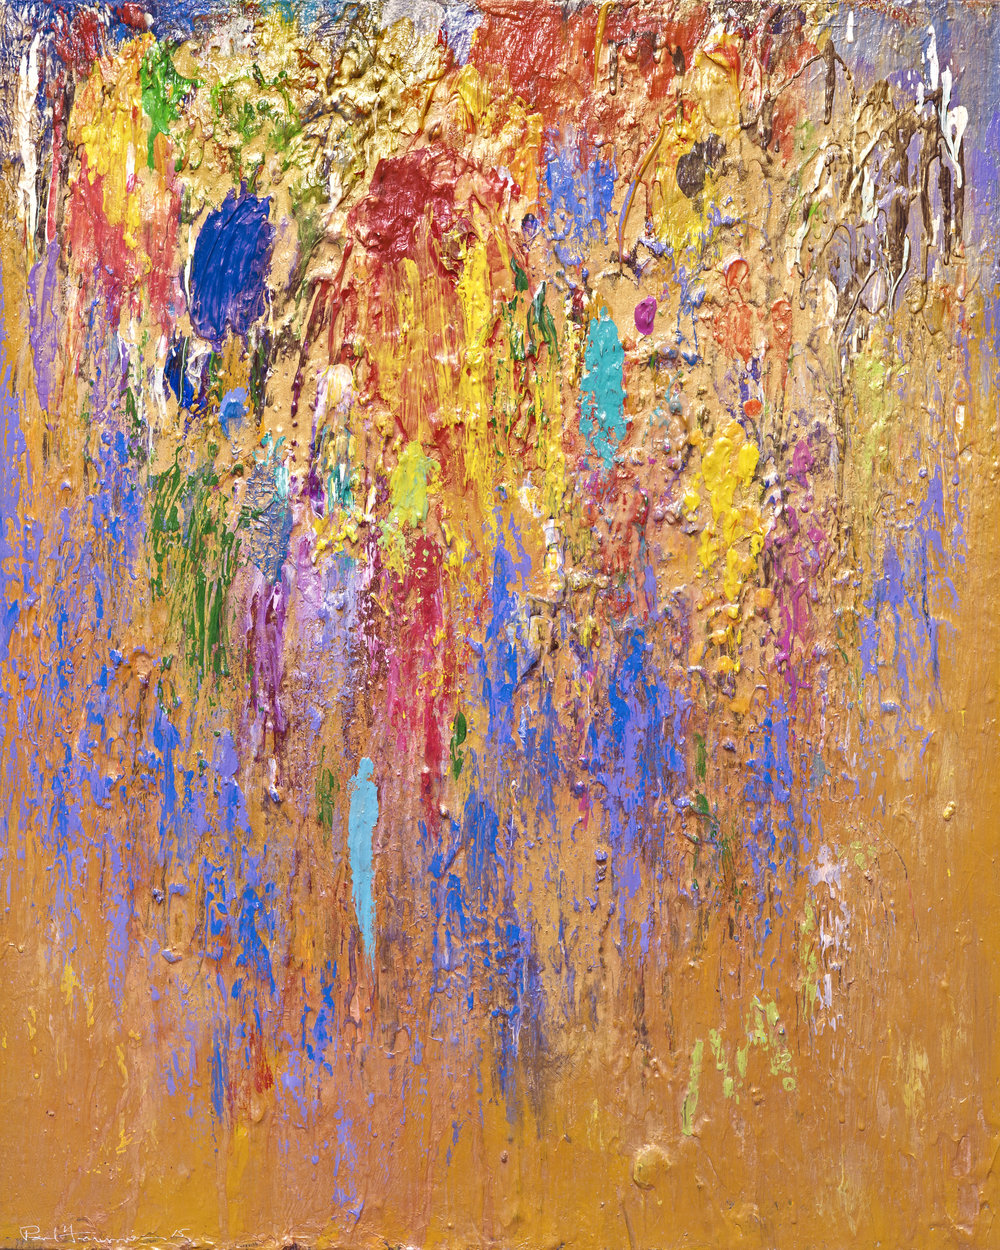 Golden Spring, 2015, 30 x 24 inches, Acrylic on canvas